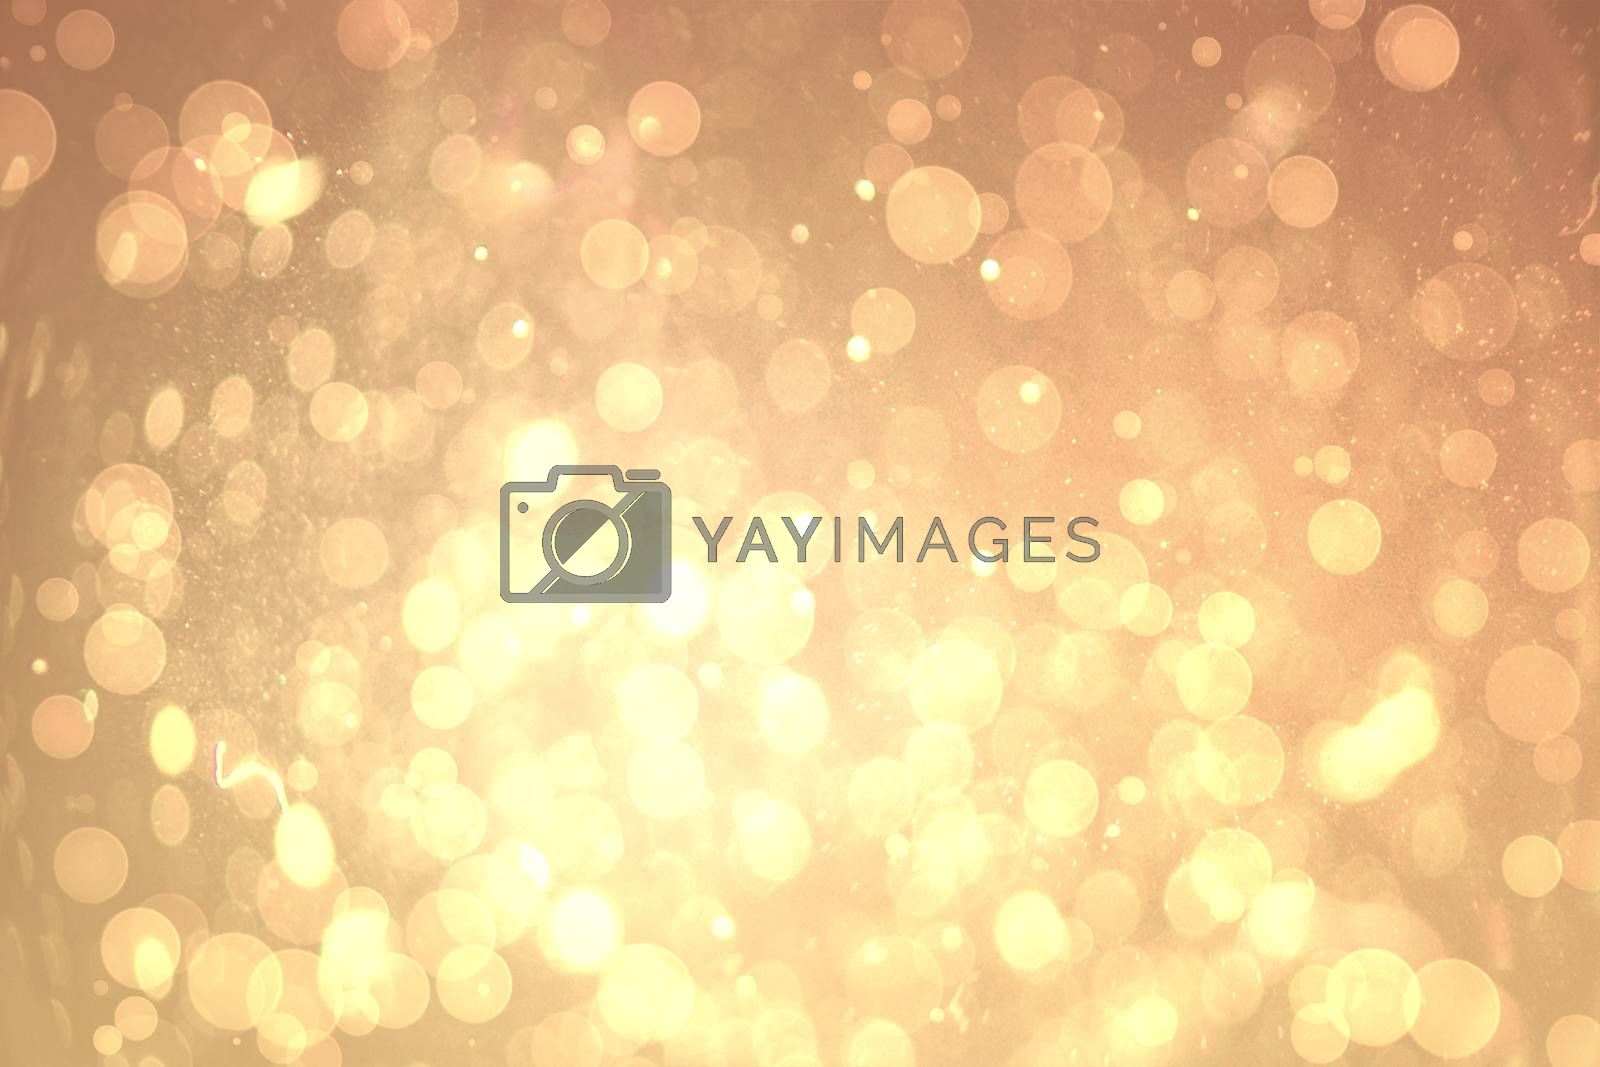 Royalty free image of Yellow abstract light spot design by Wavebreakmedia